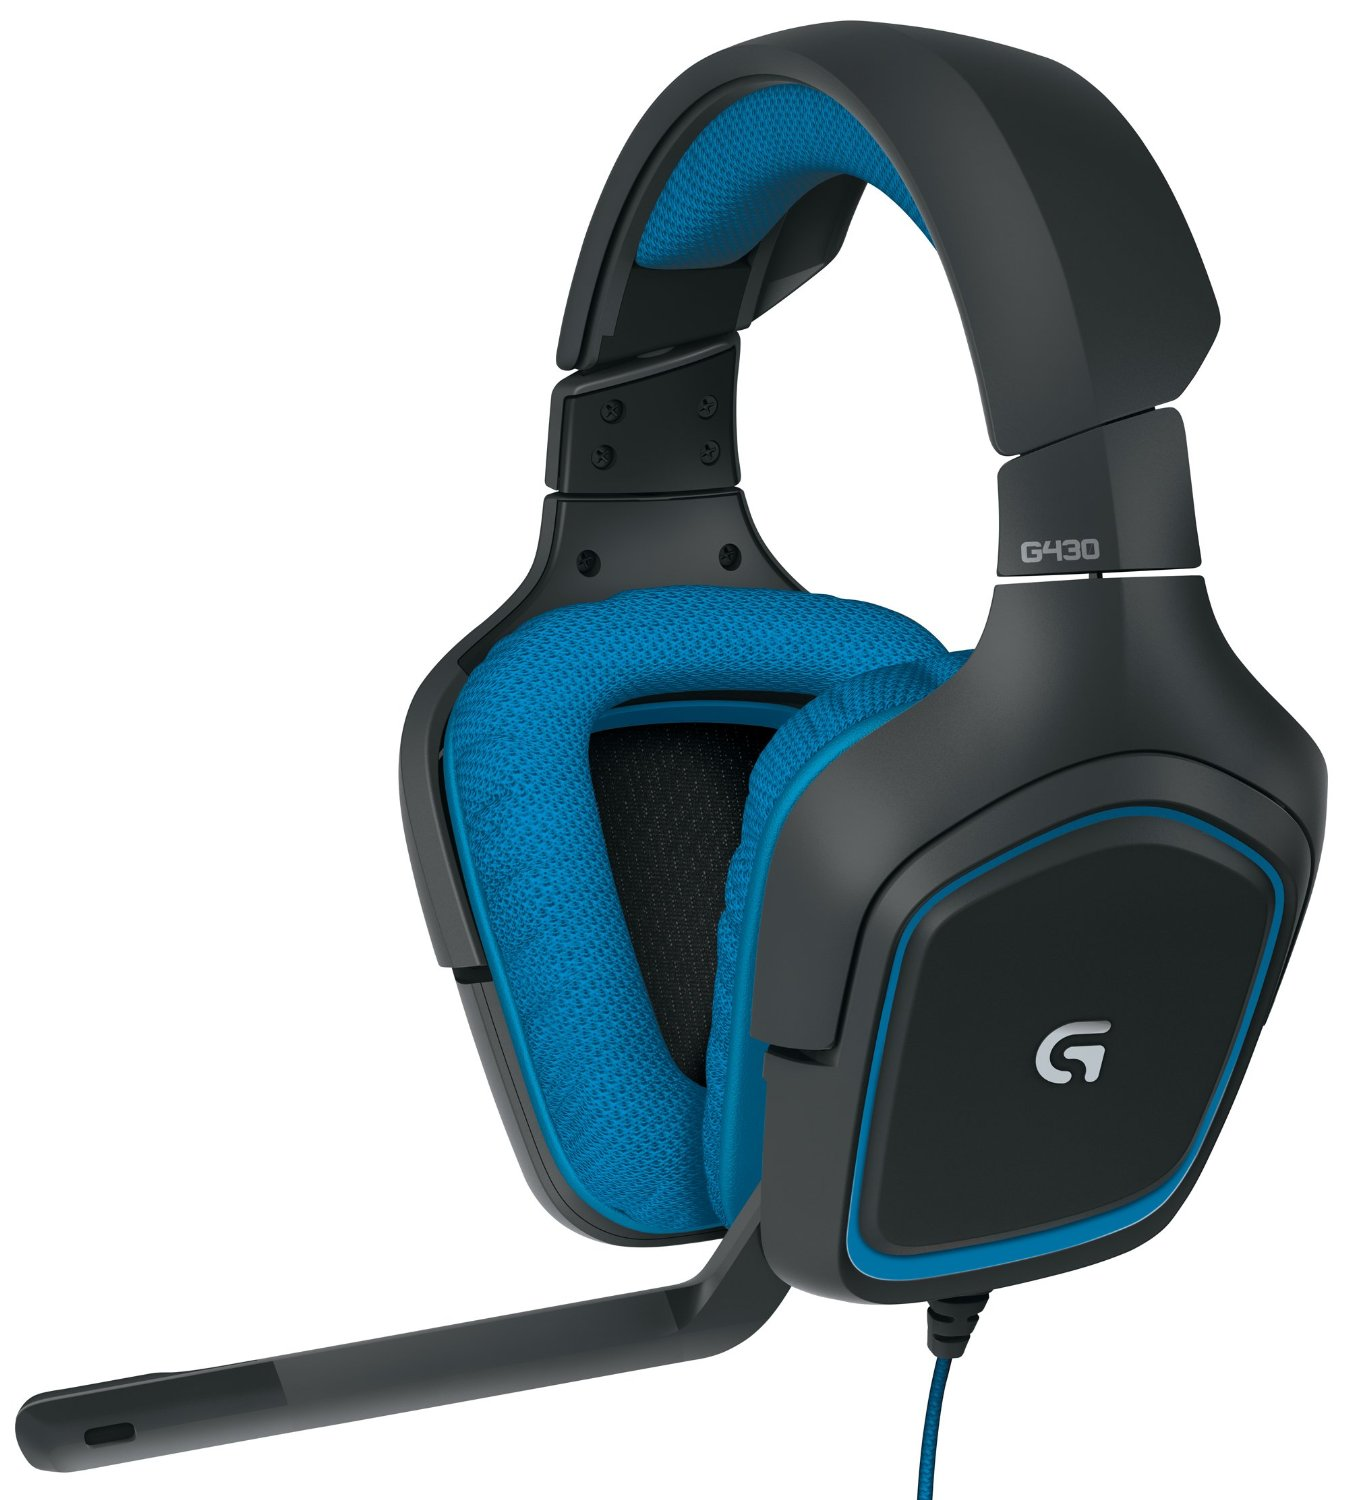 $39.99 Logitech G430 Surround Sound Gaming Headset with Dolby 7.1 Technology